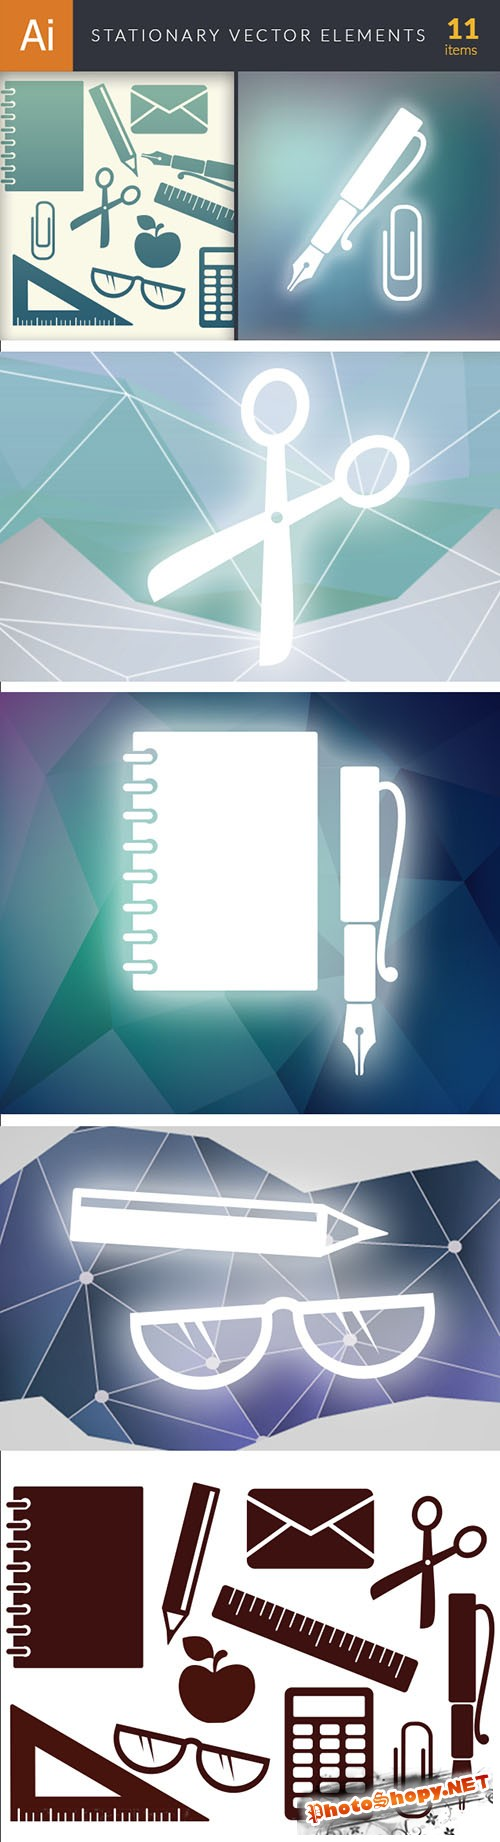 Simple Stationary Vector Elements Set 1